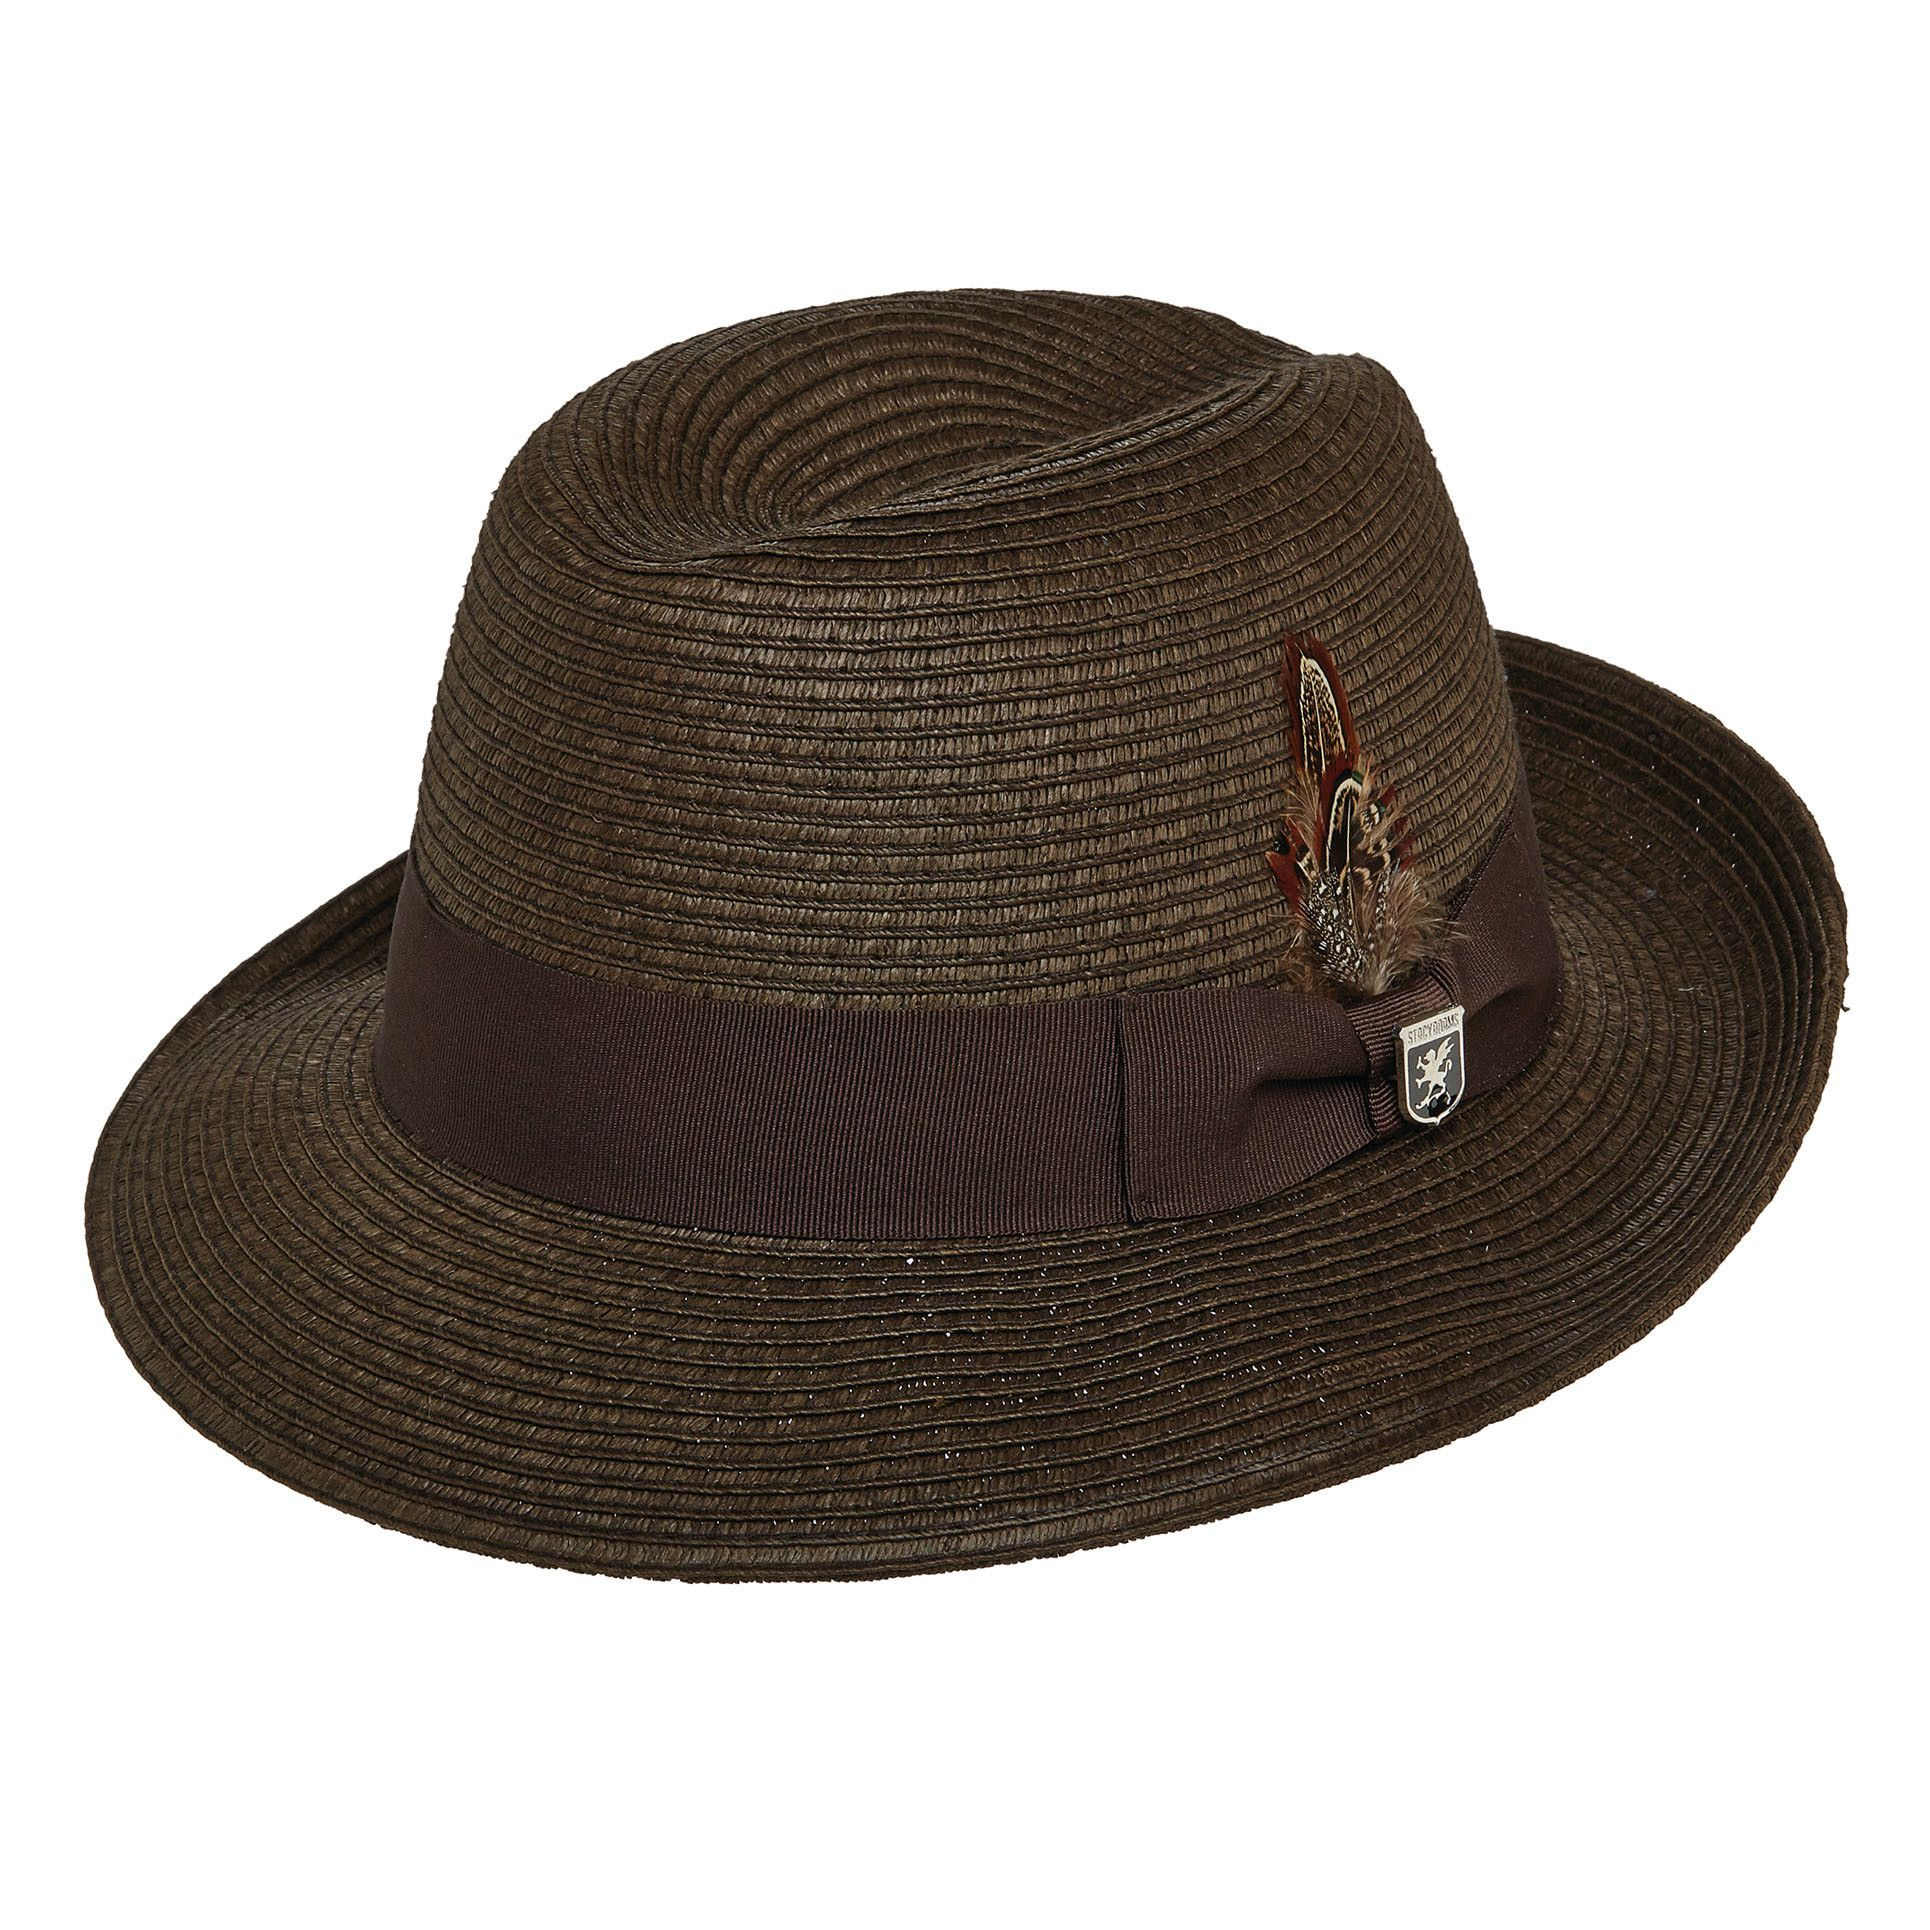 e738d7936178e Stacy Adams Summer Fedora - Chocolate